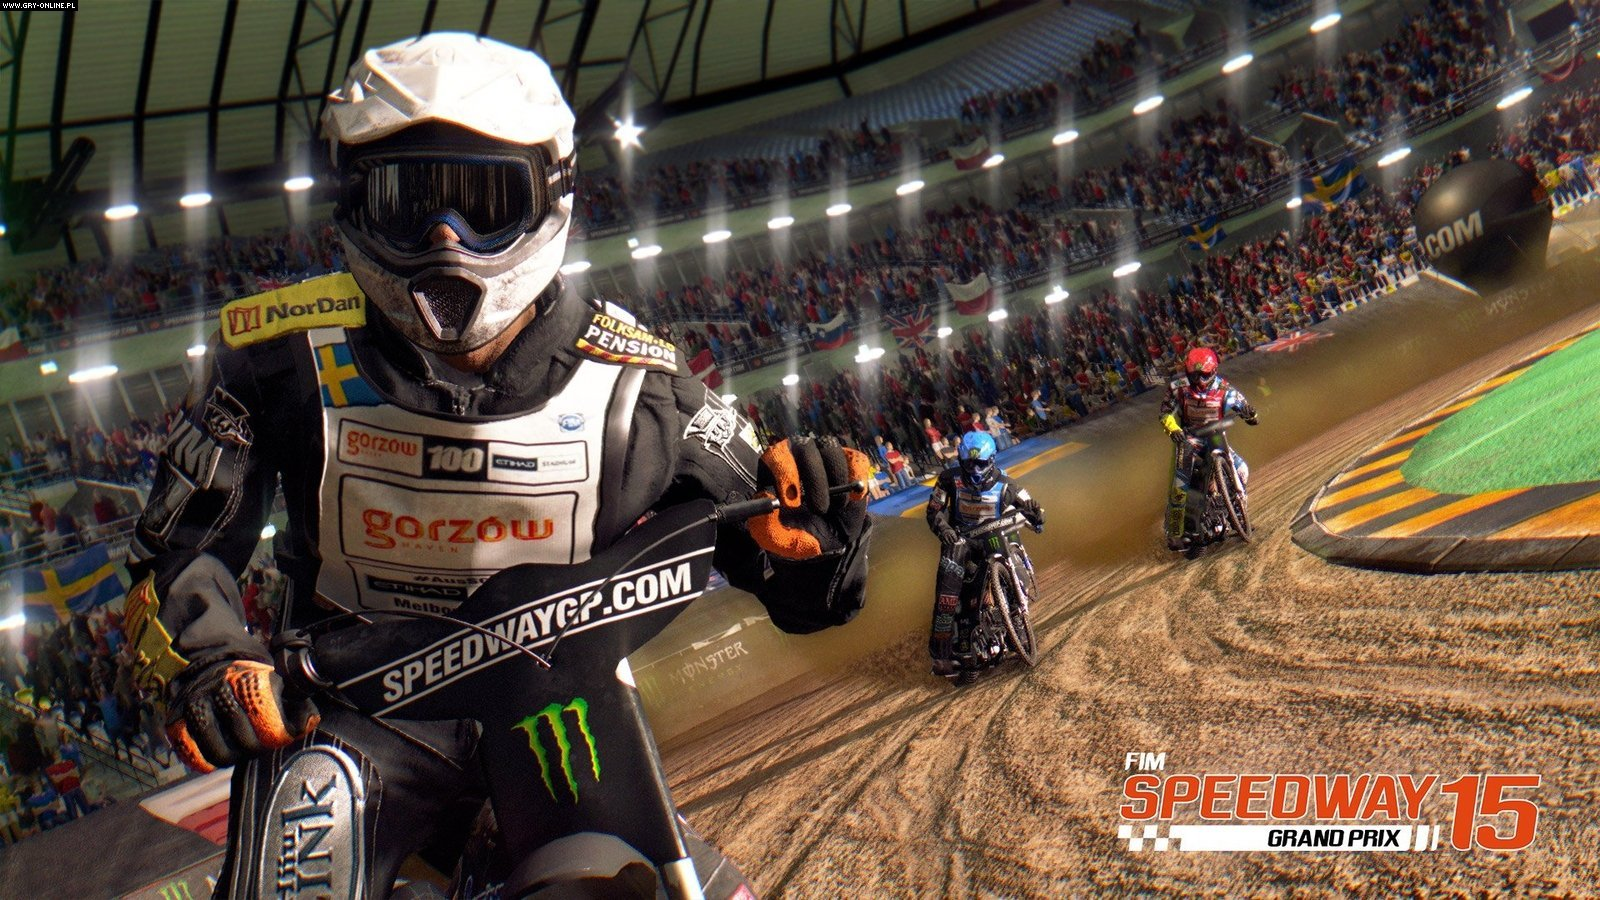 FIM Speedway Grand Prix 15 PC Gry Screen 4/10, Techland, Excalibur Publishing Limited